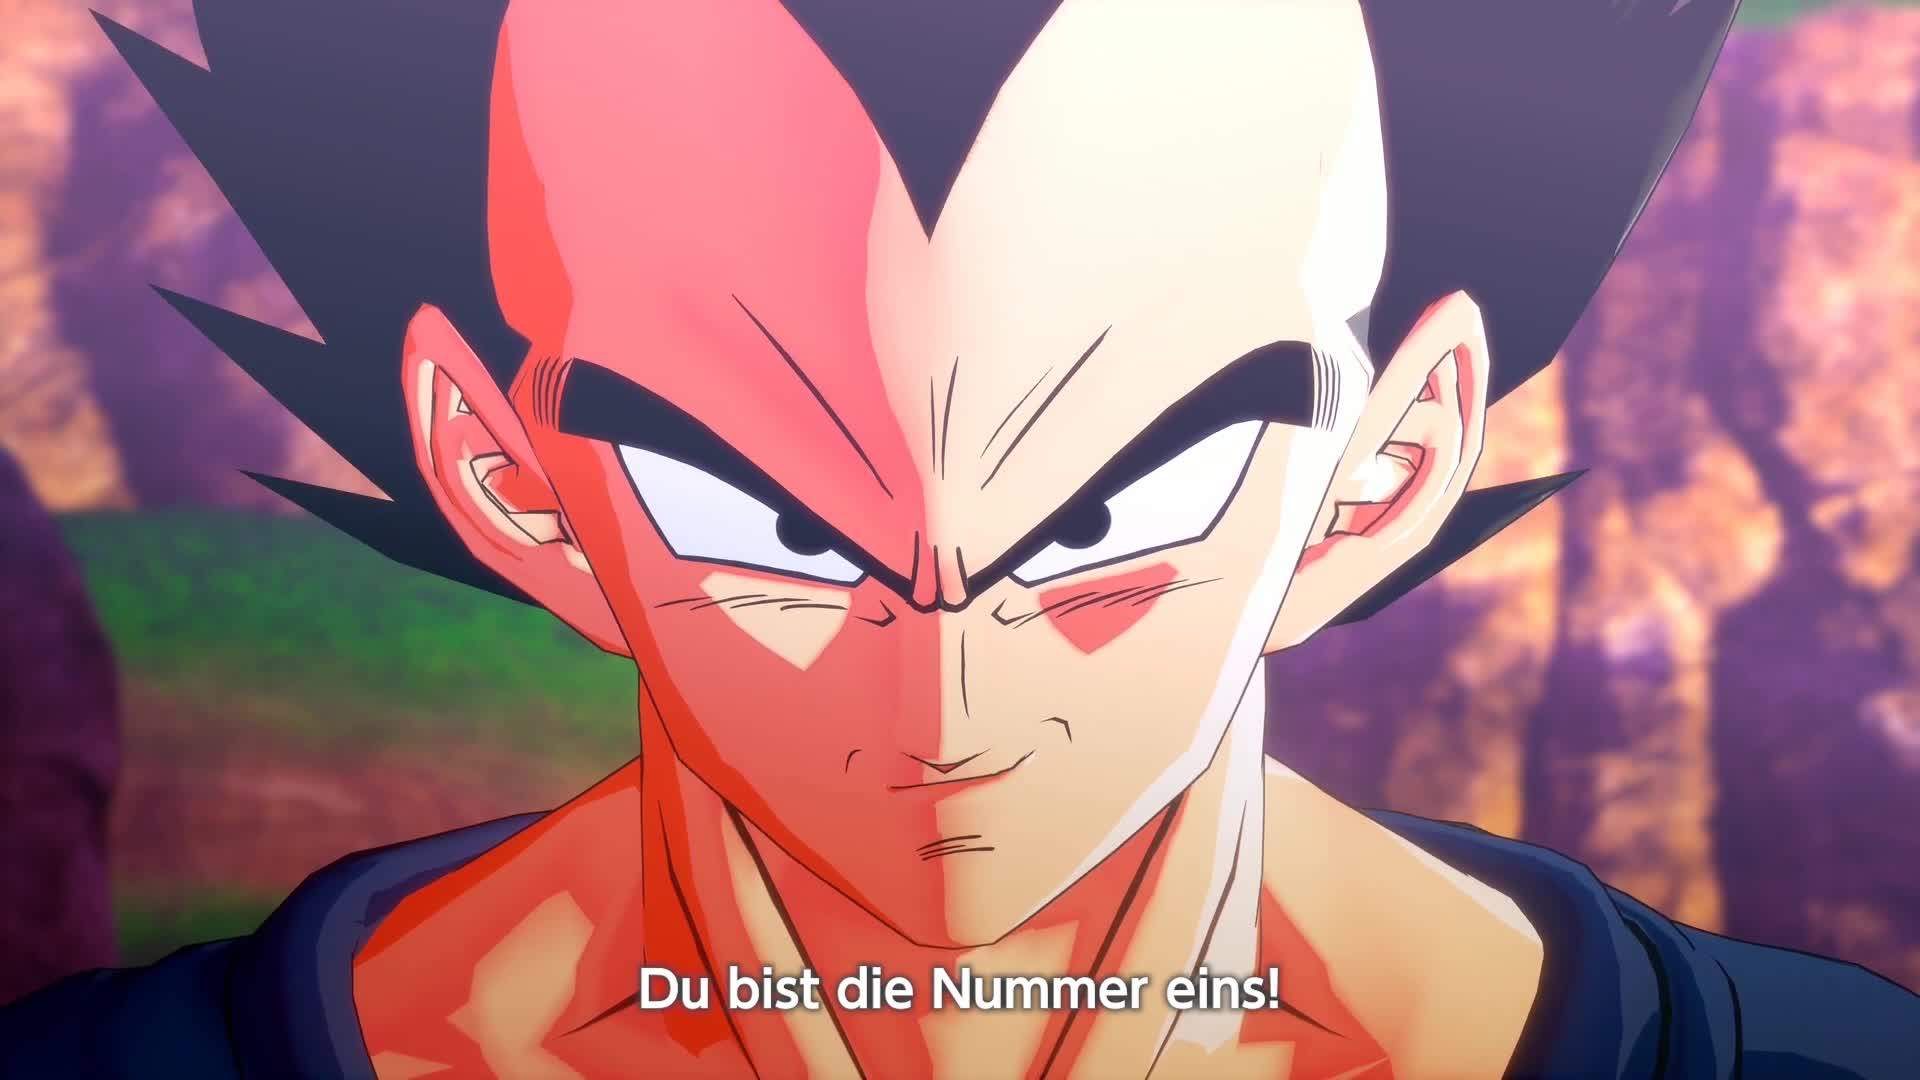 Trailer, actionspiel, Prügelspiel, Bandai Namco, Anime, Manga, Dragon Ball, Dragon Ball Z, Dragon Ball Z: Kakarot, Kakarot